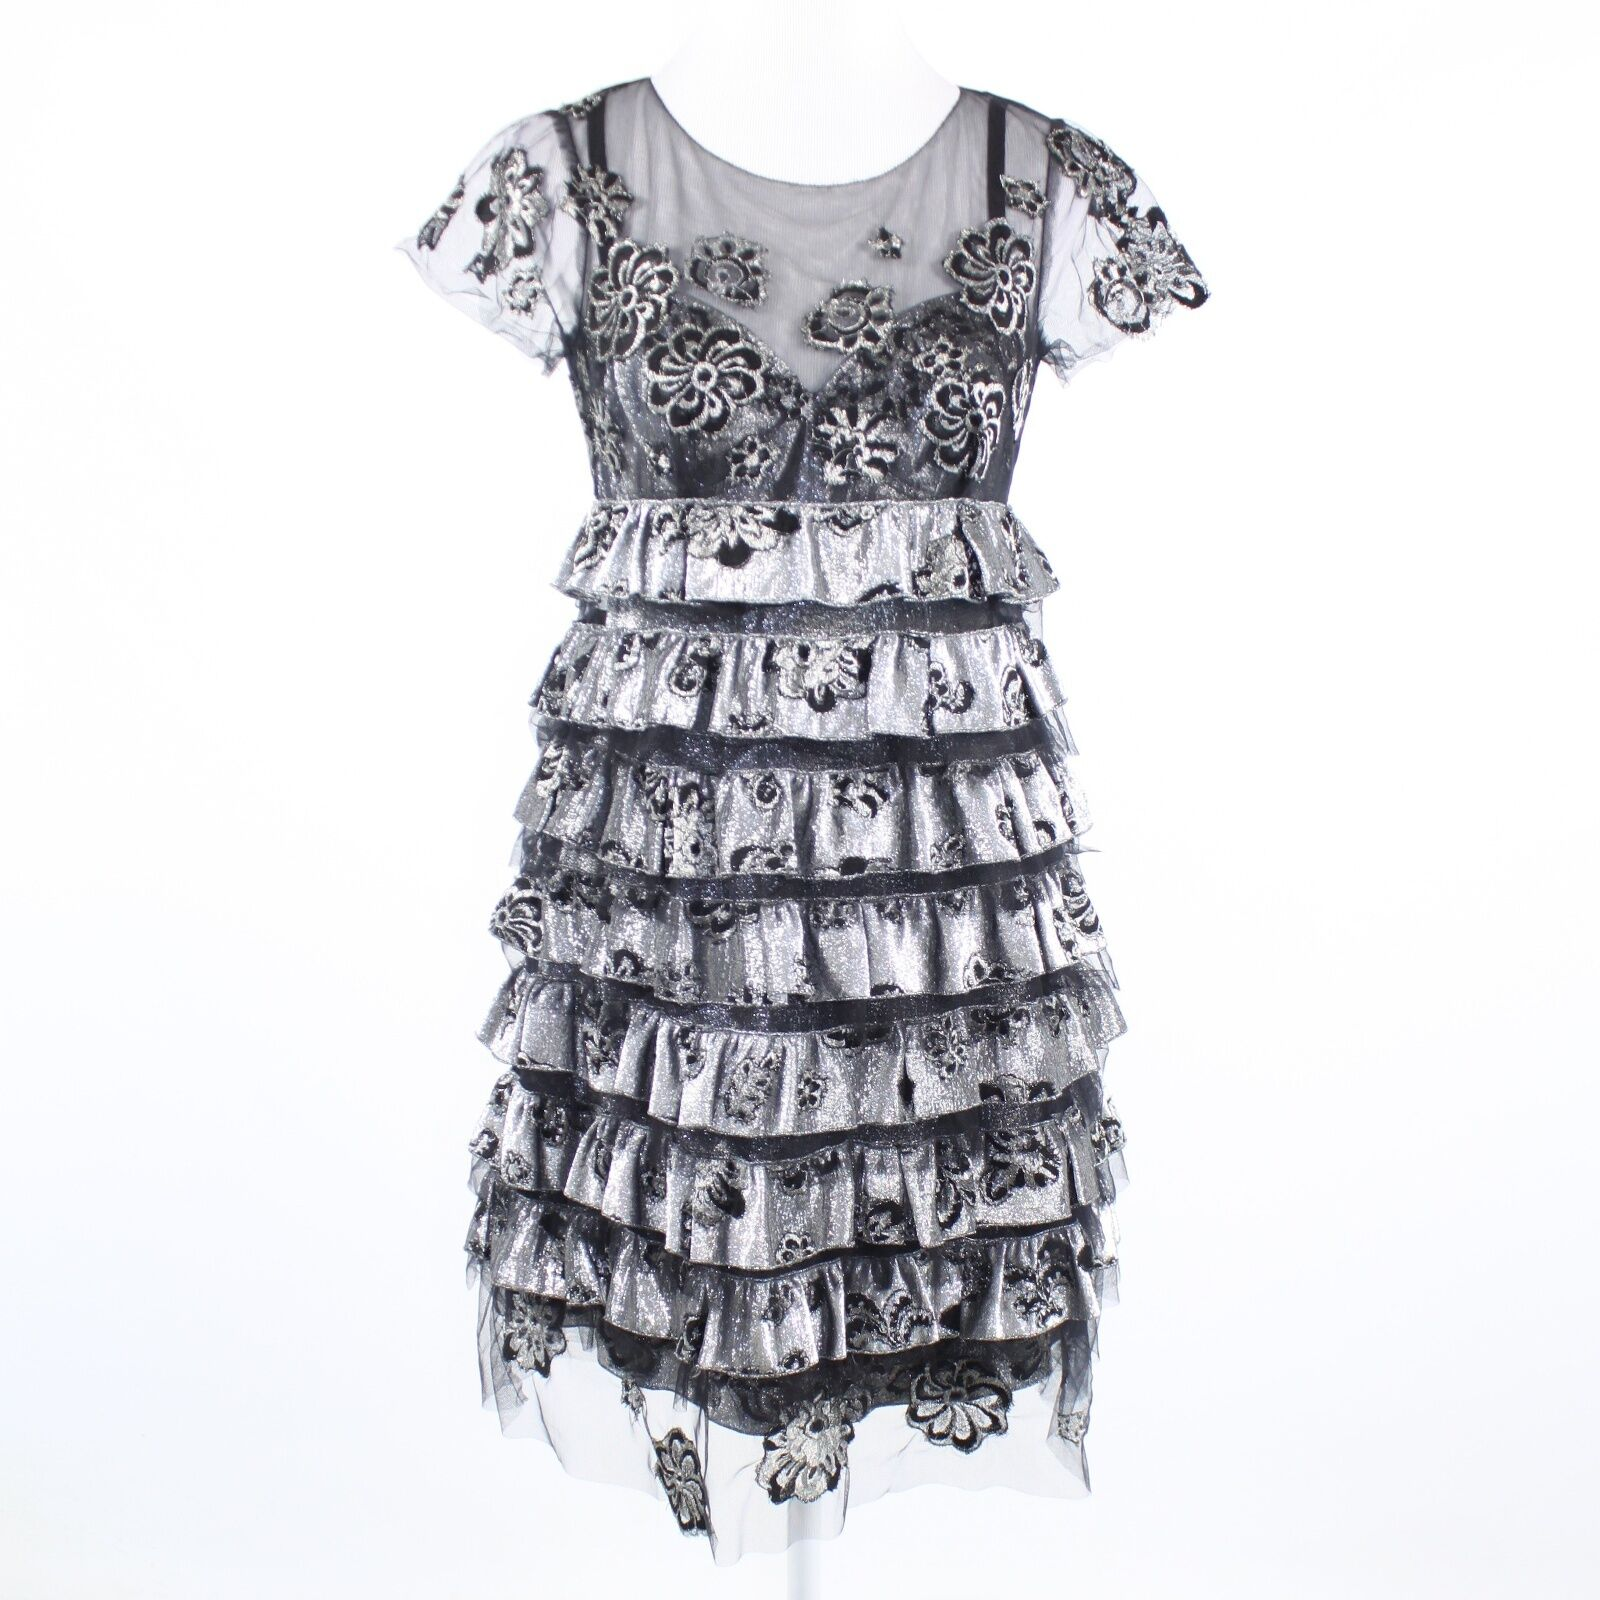 Silver black lace tulle MARC JACOBS Bergdorf Goodman tiered dress 2 Orig. $1,880